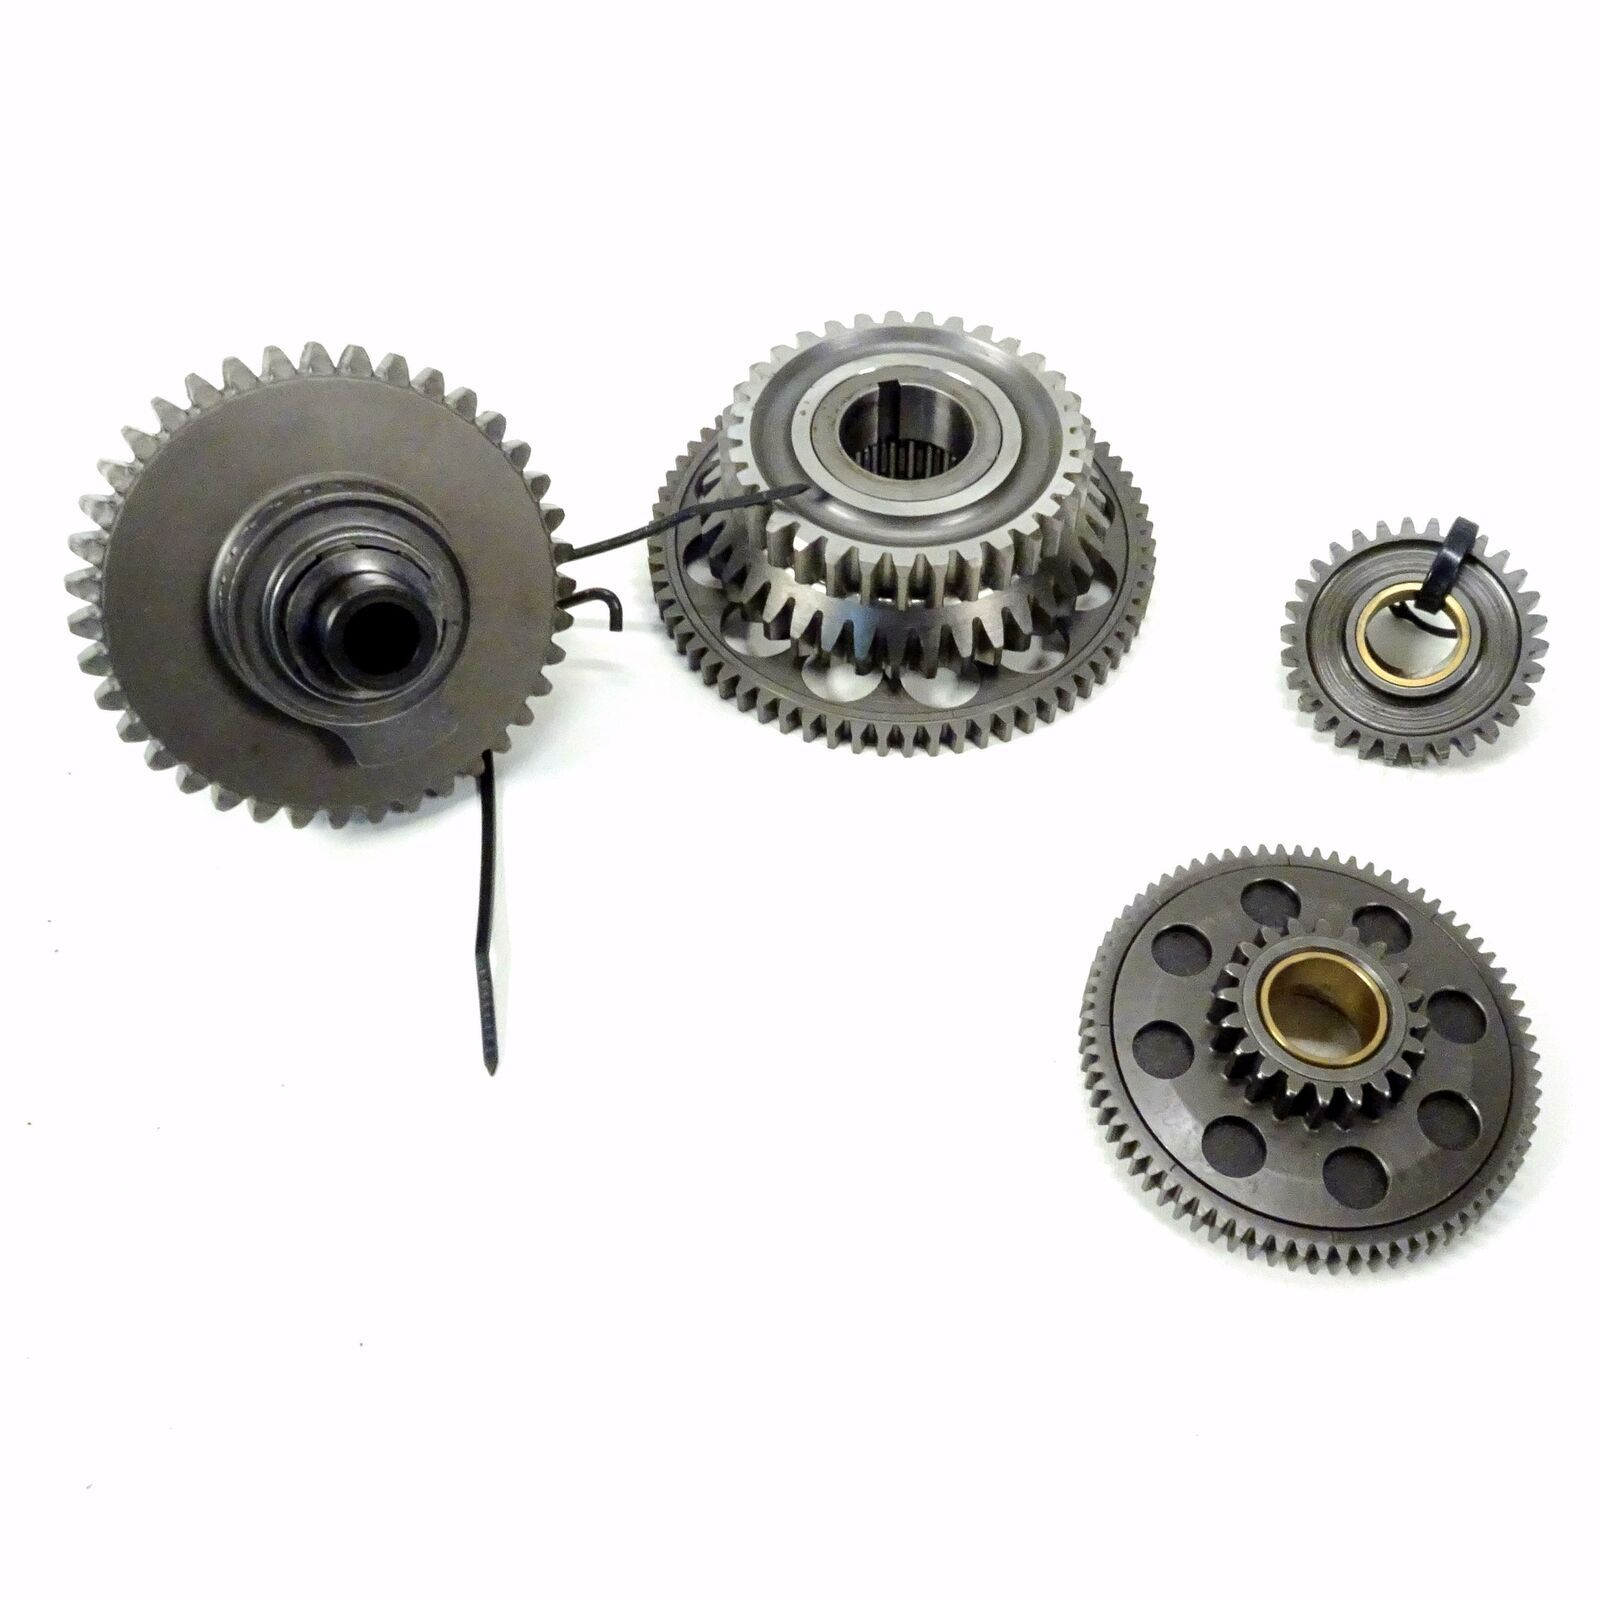 2008 Ktm 450 530 Excr Xc4 Starter Gears One Way Clutch Torque Limiter Ktm Ktm 450 Dirt Bike Parts